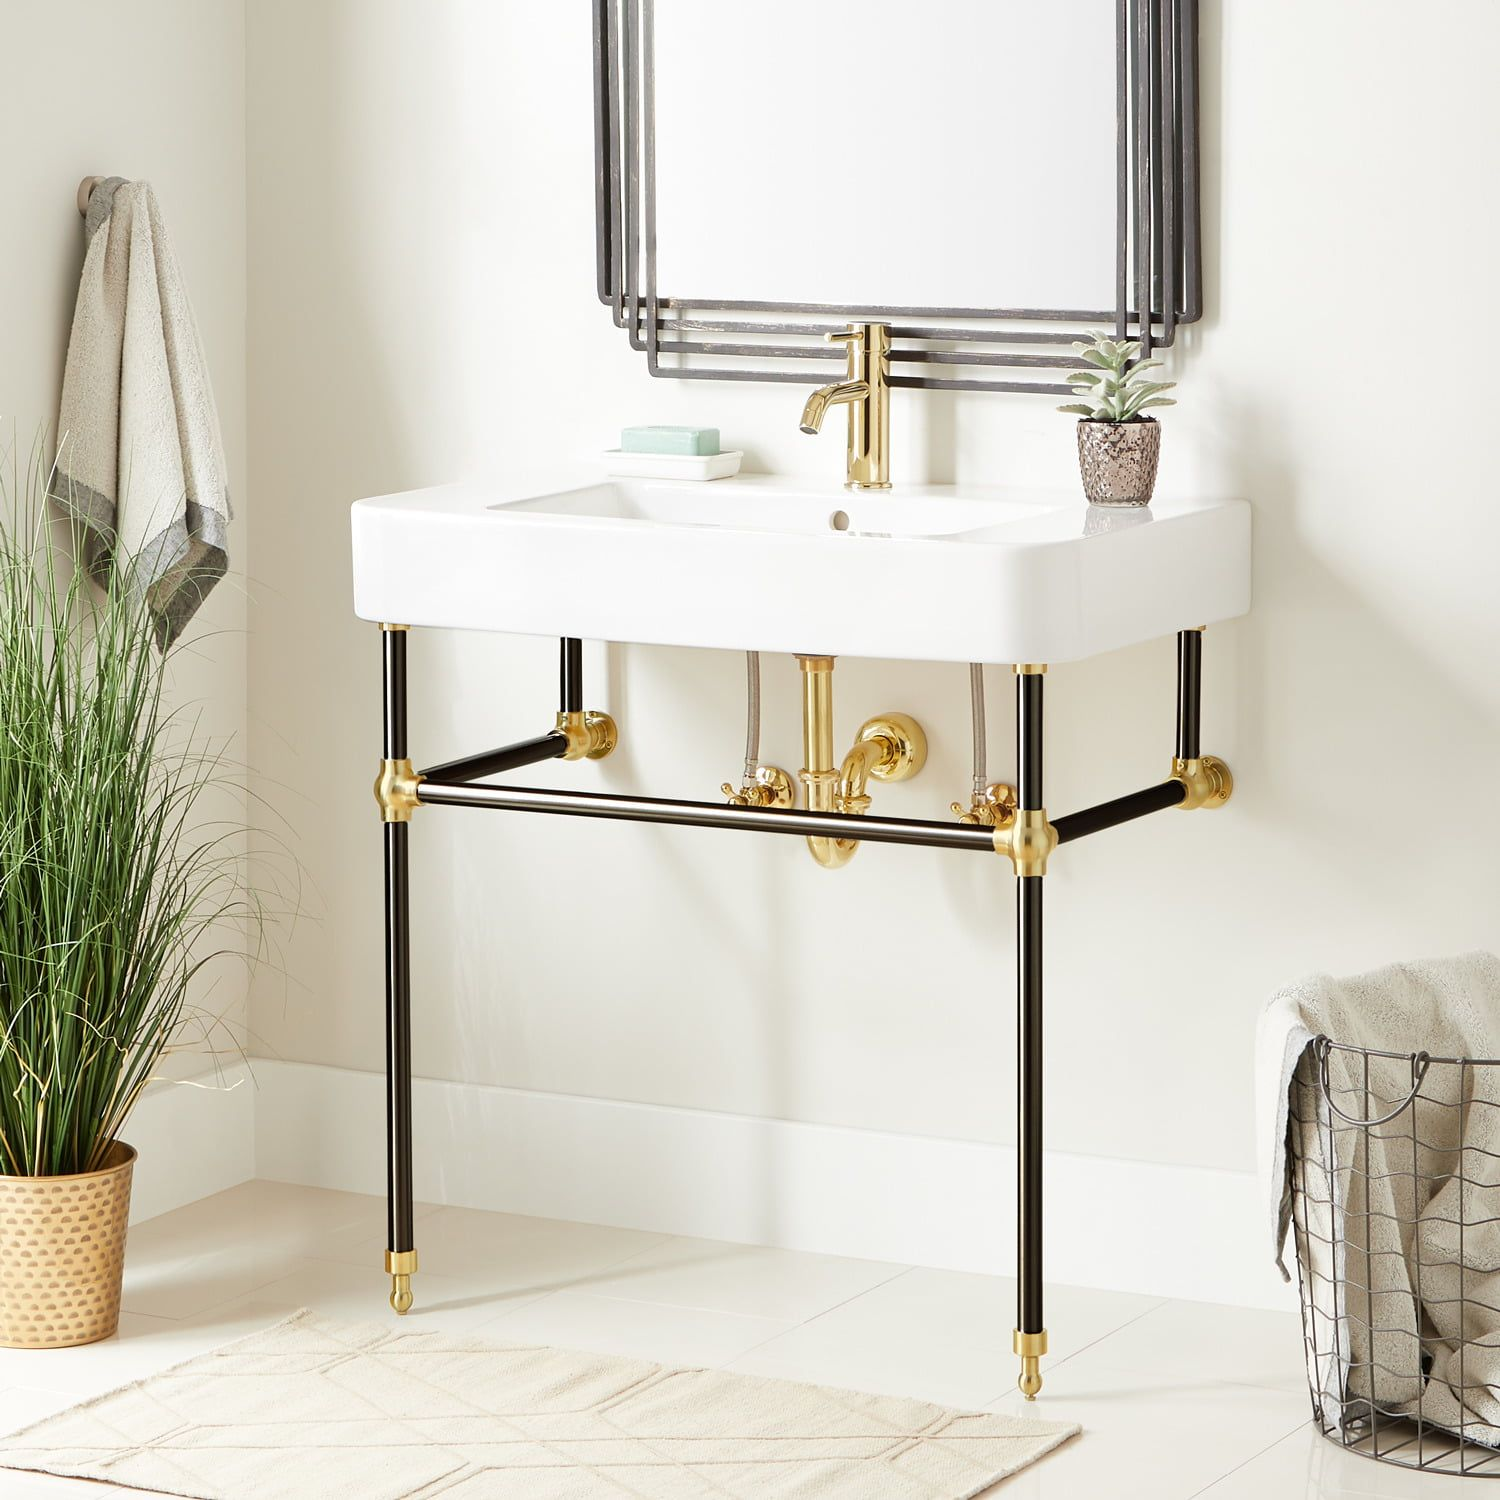 Perfect For A Mixed Metals Design The Burleson Console Sink